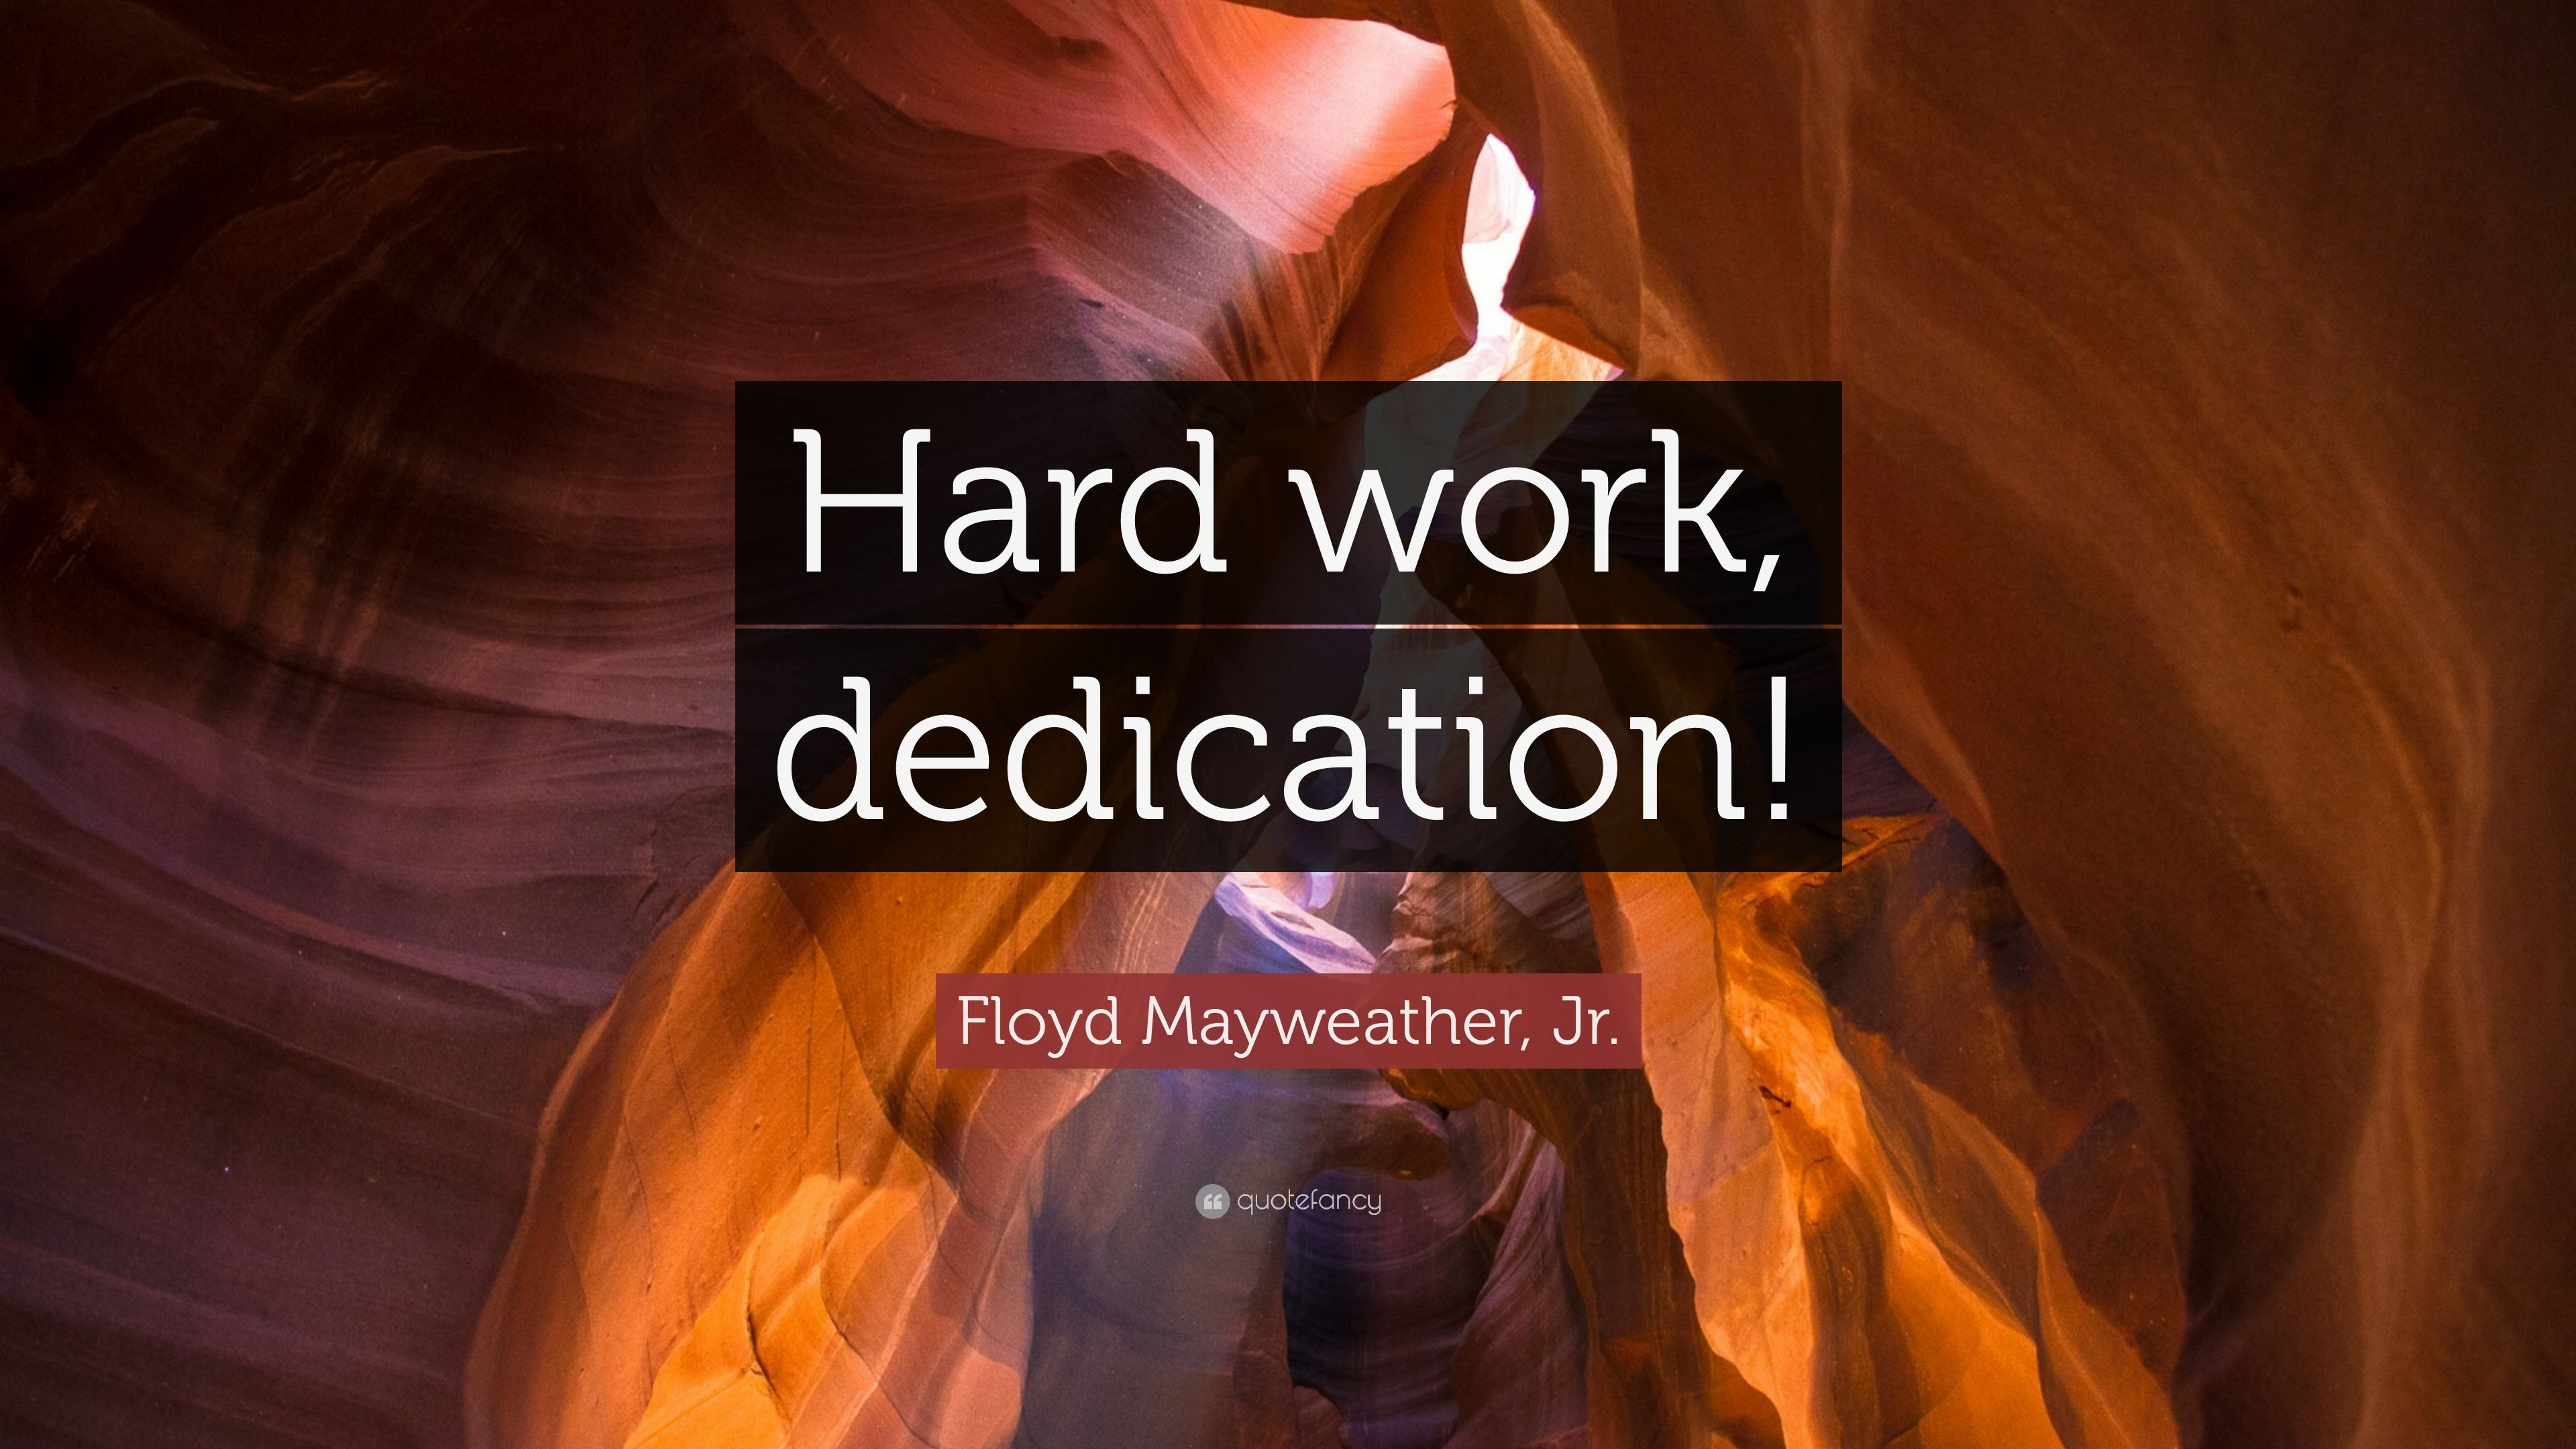 Floyd mayweather jr quote hard work dedication 10 floyd mayweather jr quote hard work dedication 10 altavistaventures Images